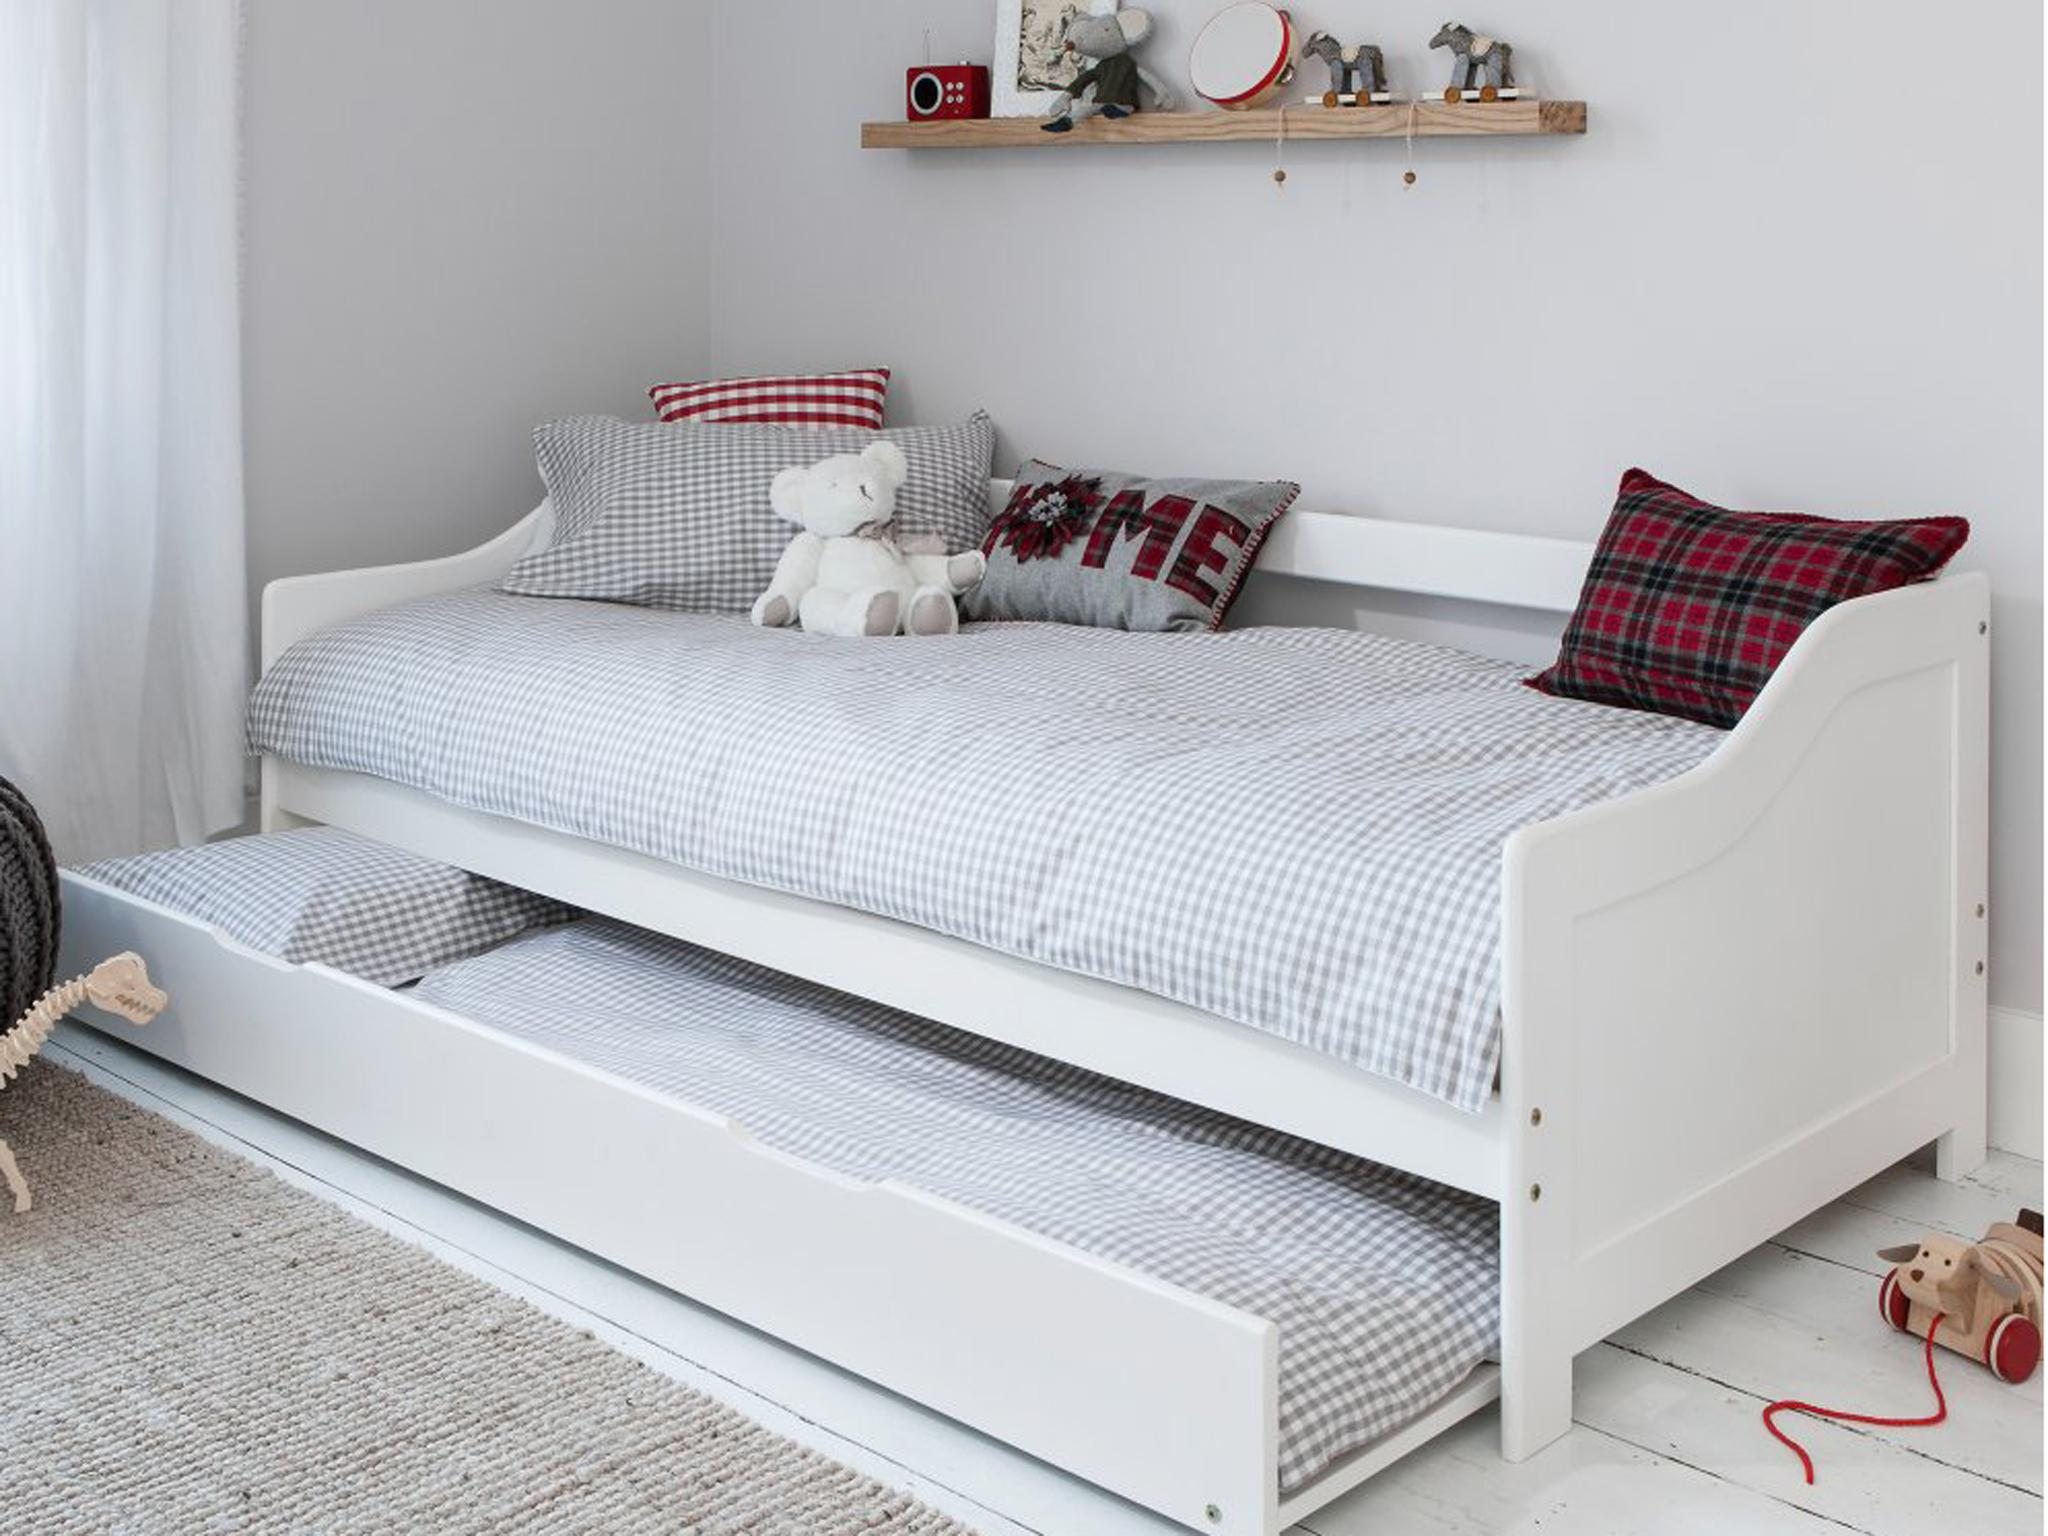 10 best day beds | The Independent